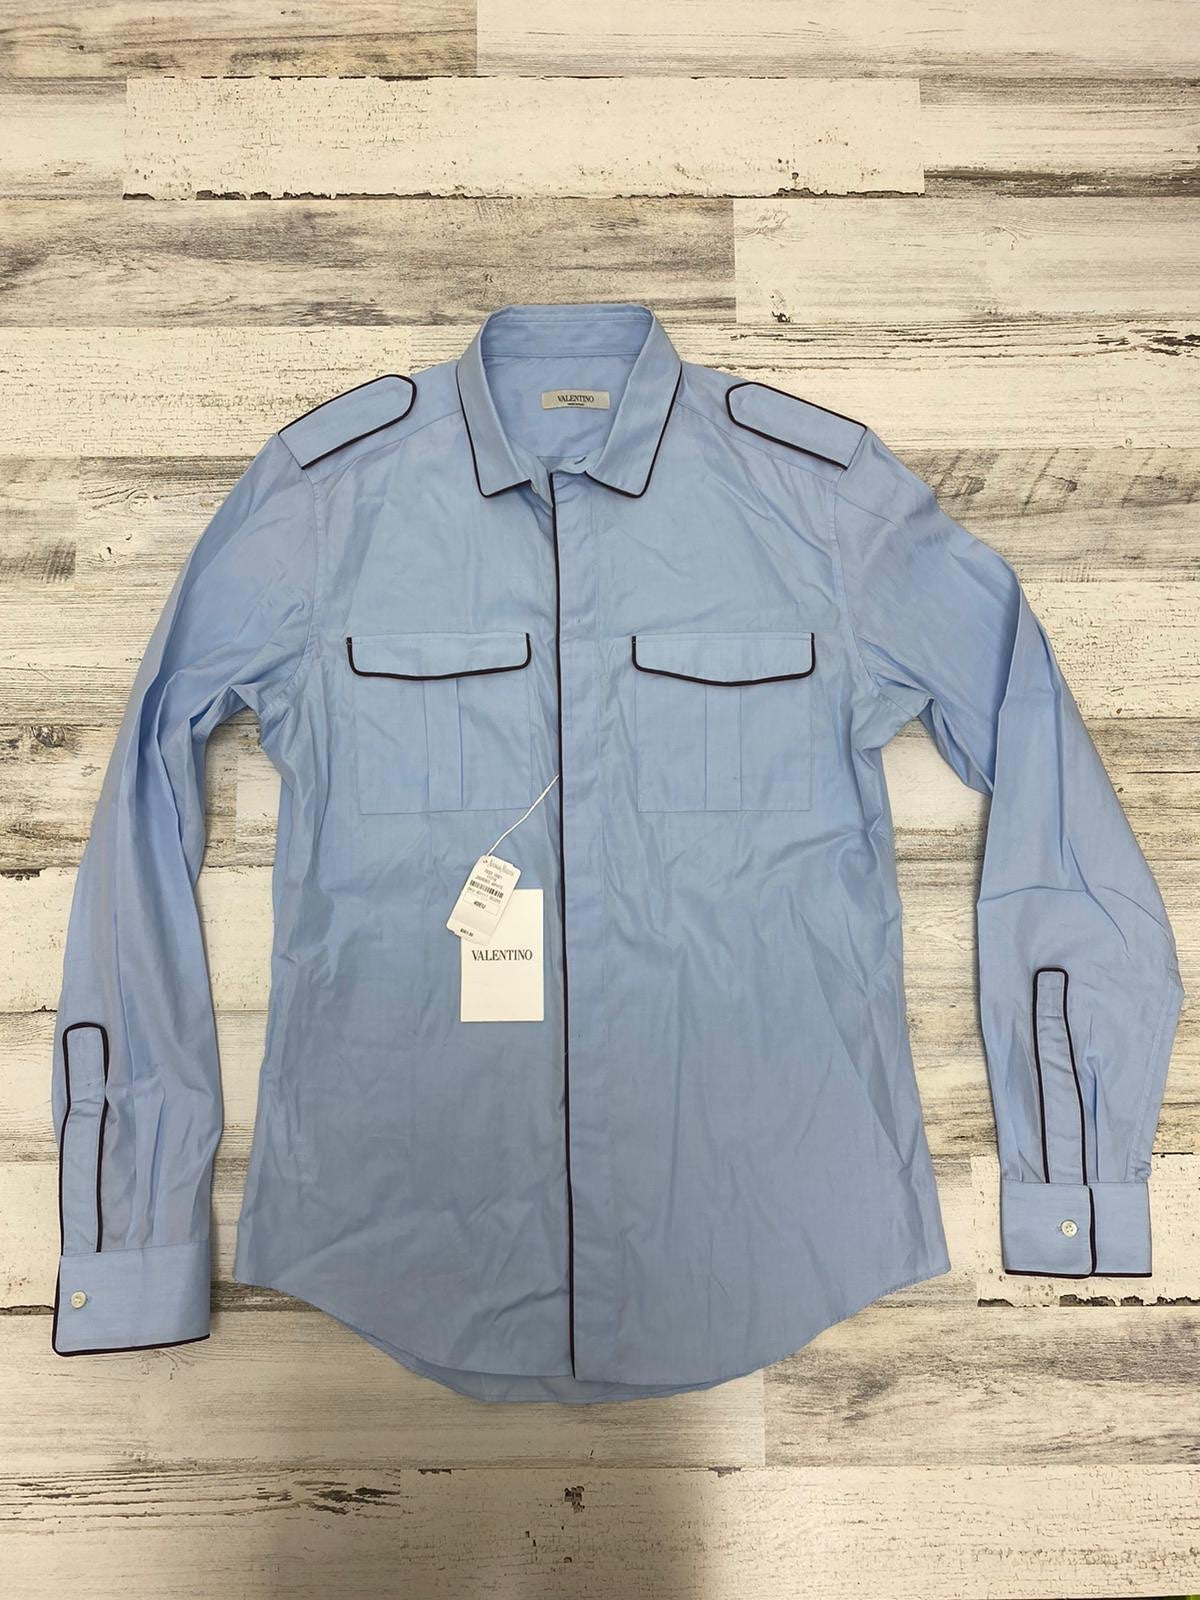 $950 valentino army style shirt